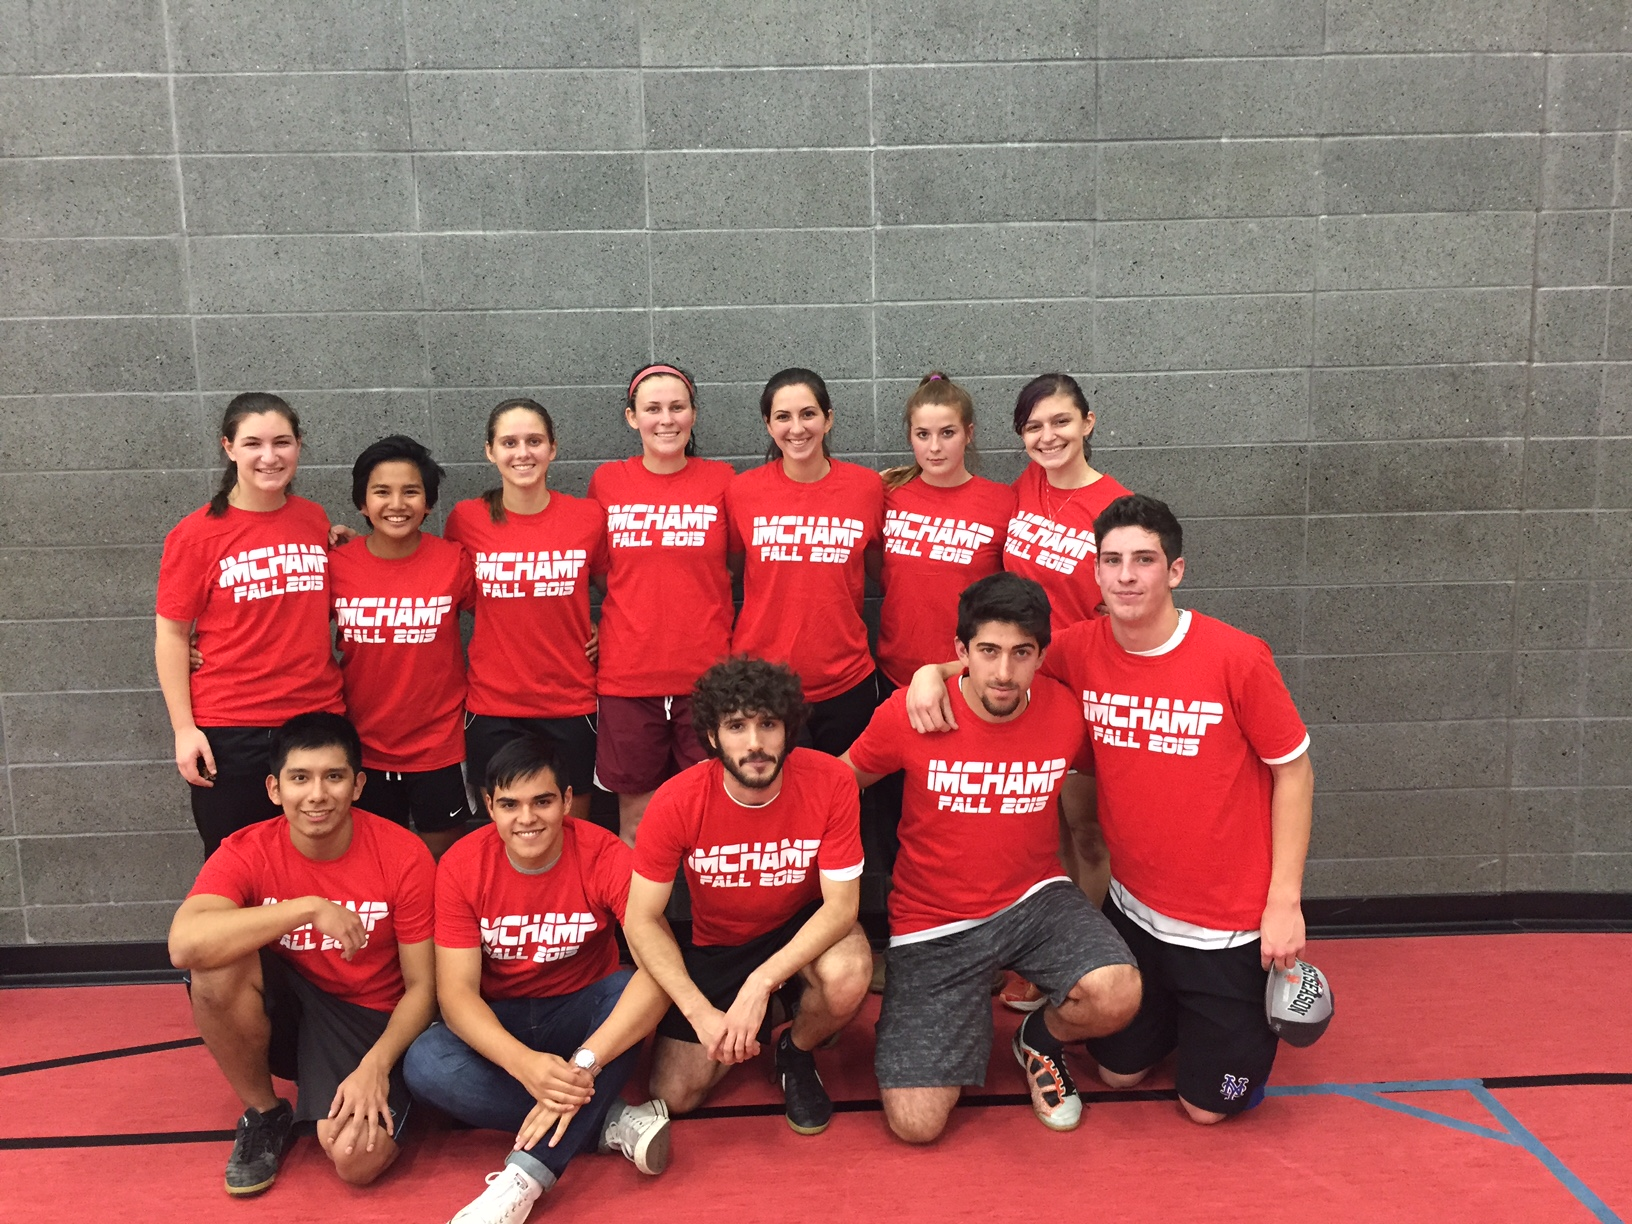 Red Team: CoRec Competitive Indoor Soccer Champions